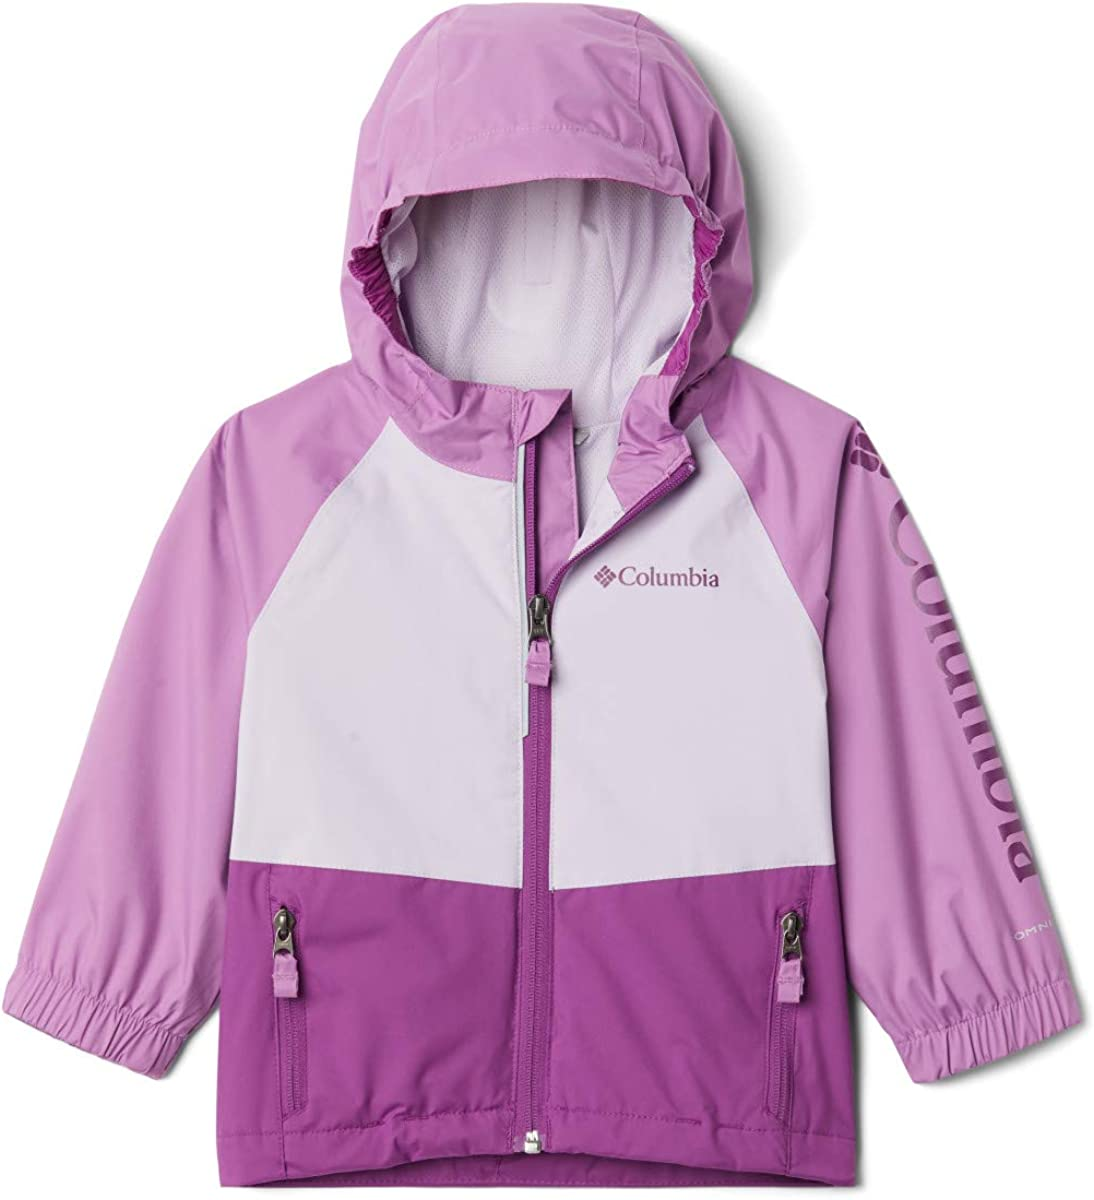 Extended Fit Columbia Kids /& Baby Rain Scape Jacket Waterproof /& Breathable